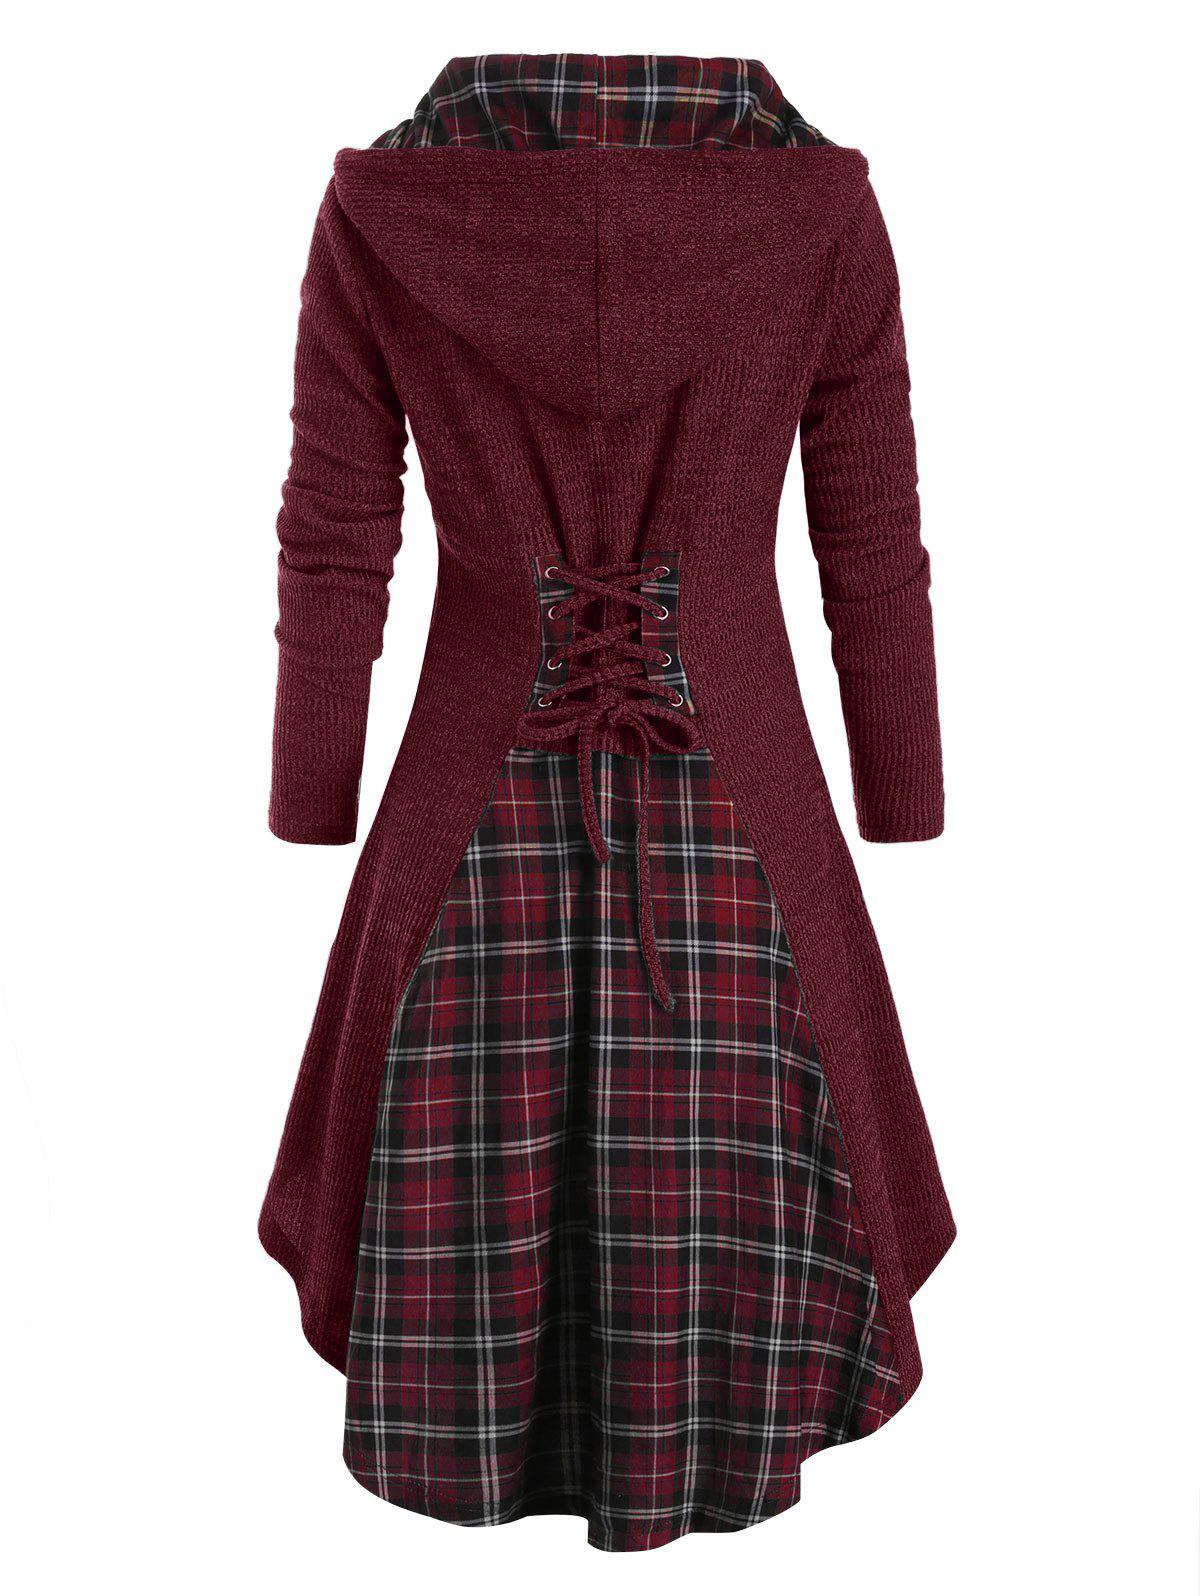 Plaid Horn Button Lace Up High Low Hooded Cardigan - RED WINE M